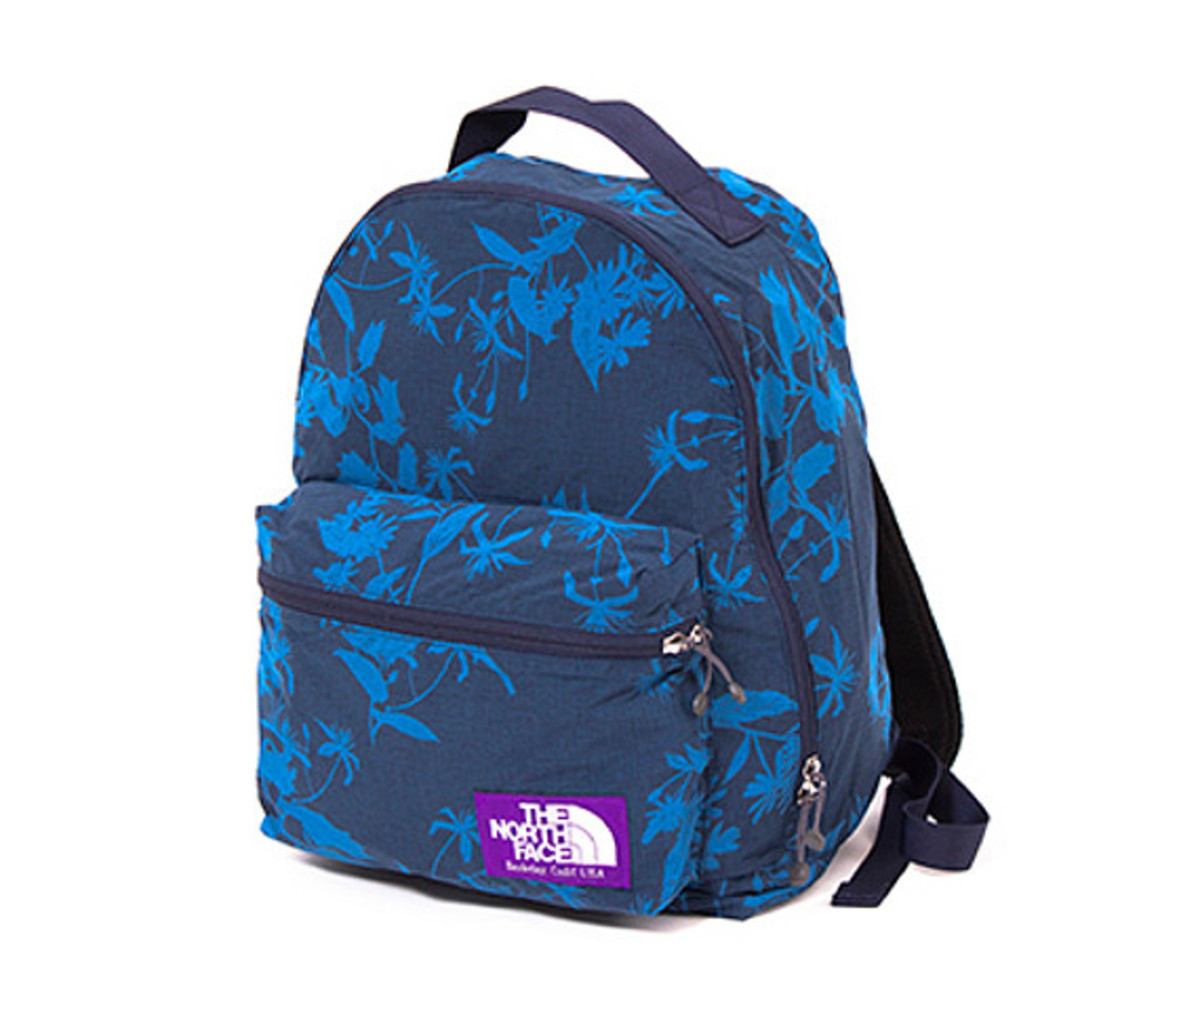 the-north-face-purple-label-aloha-print-bags-02